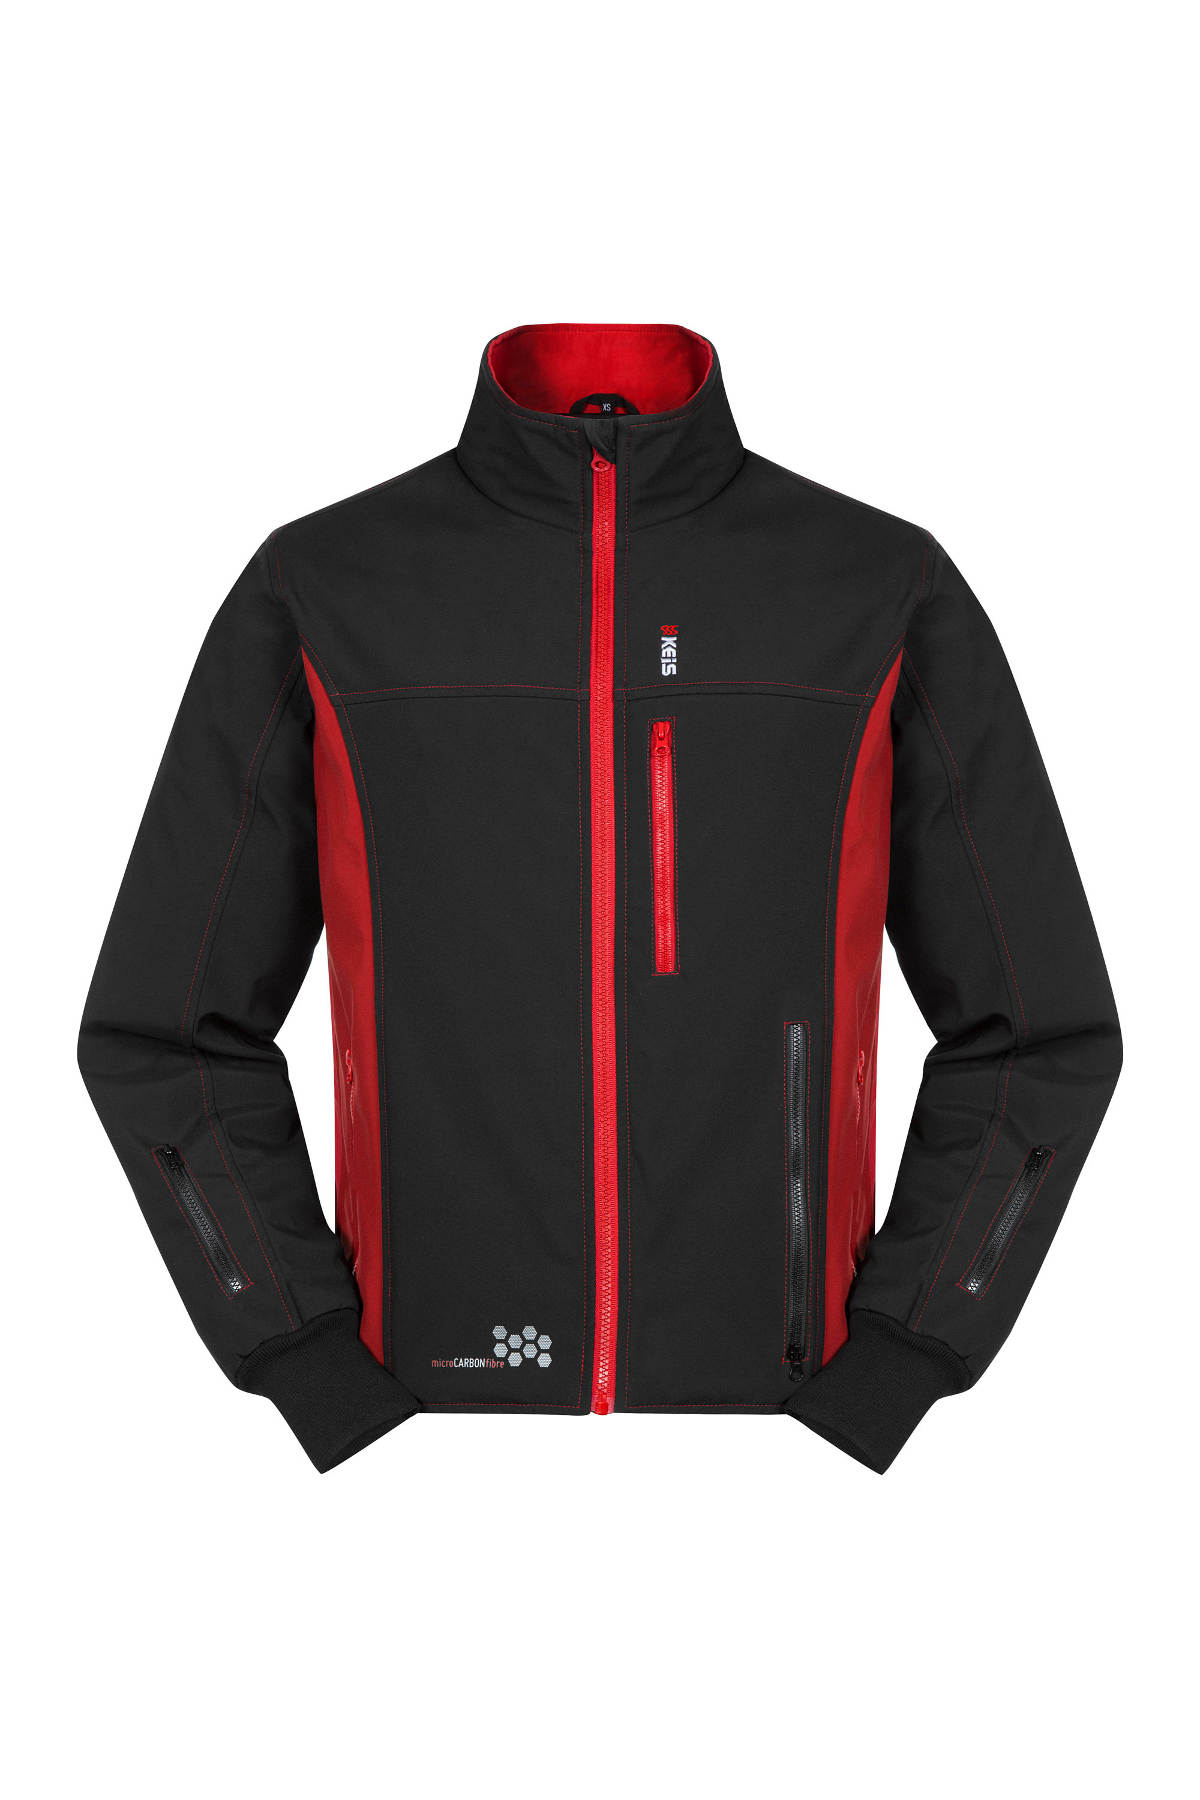 Keis Premium J501 Heated Jacket Front